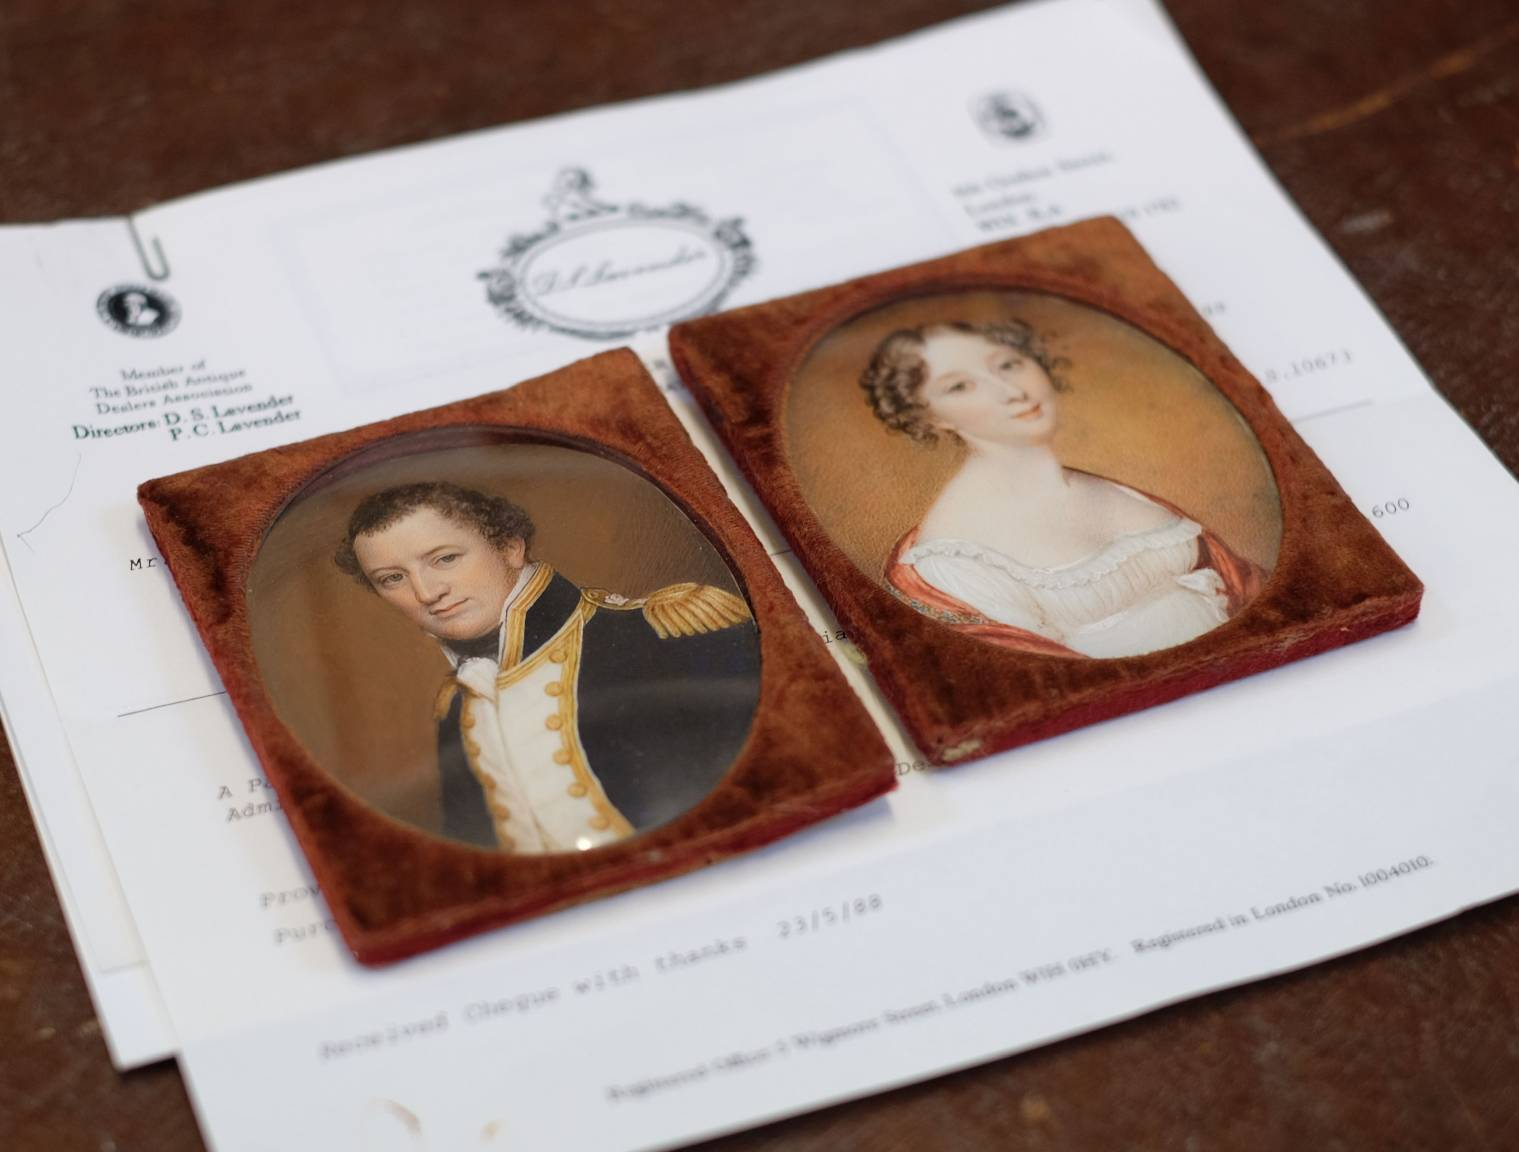 Lot 231 - *Miniatures. Admiral Edward Hawker and his wife, Joanna Naomi (née Poore), circa 1815, pair of